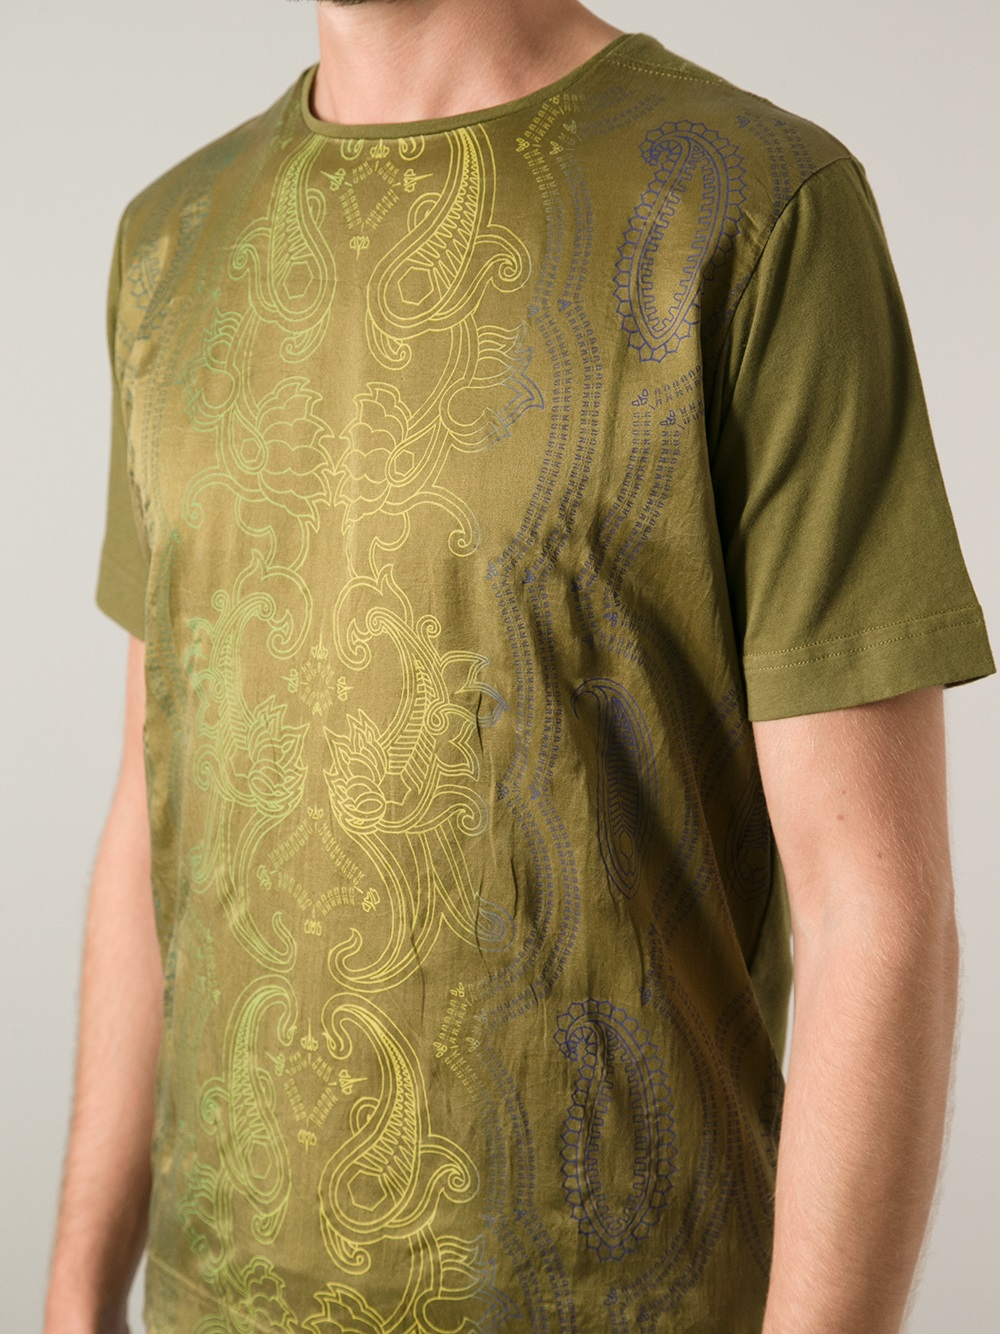 Diesel Black Gold Tachici Paisley Tshirt In Green For Men